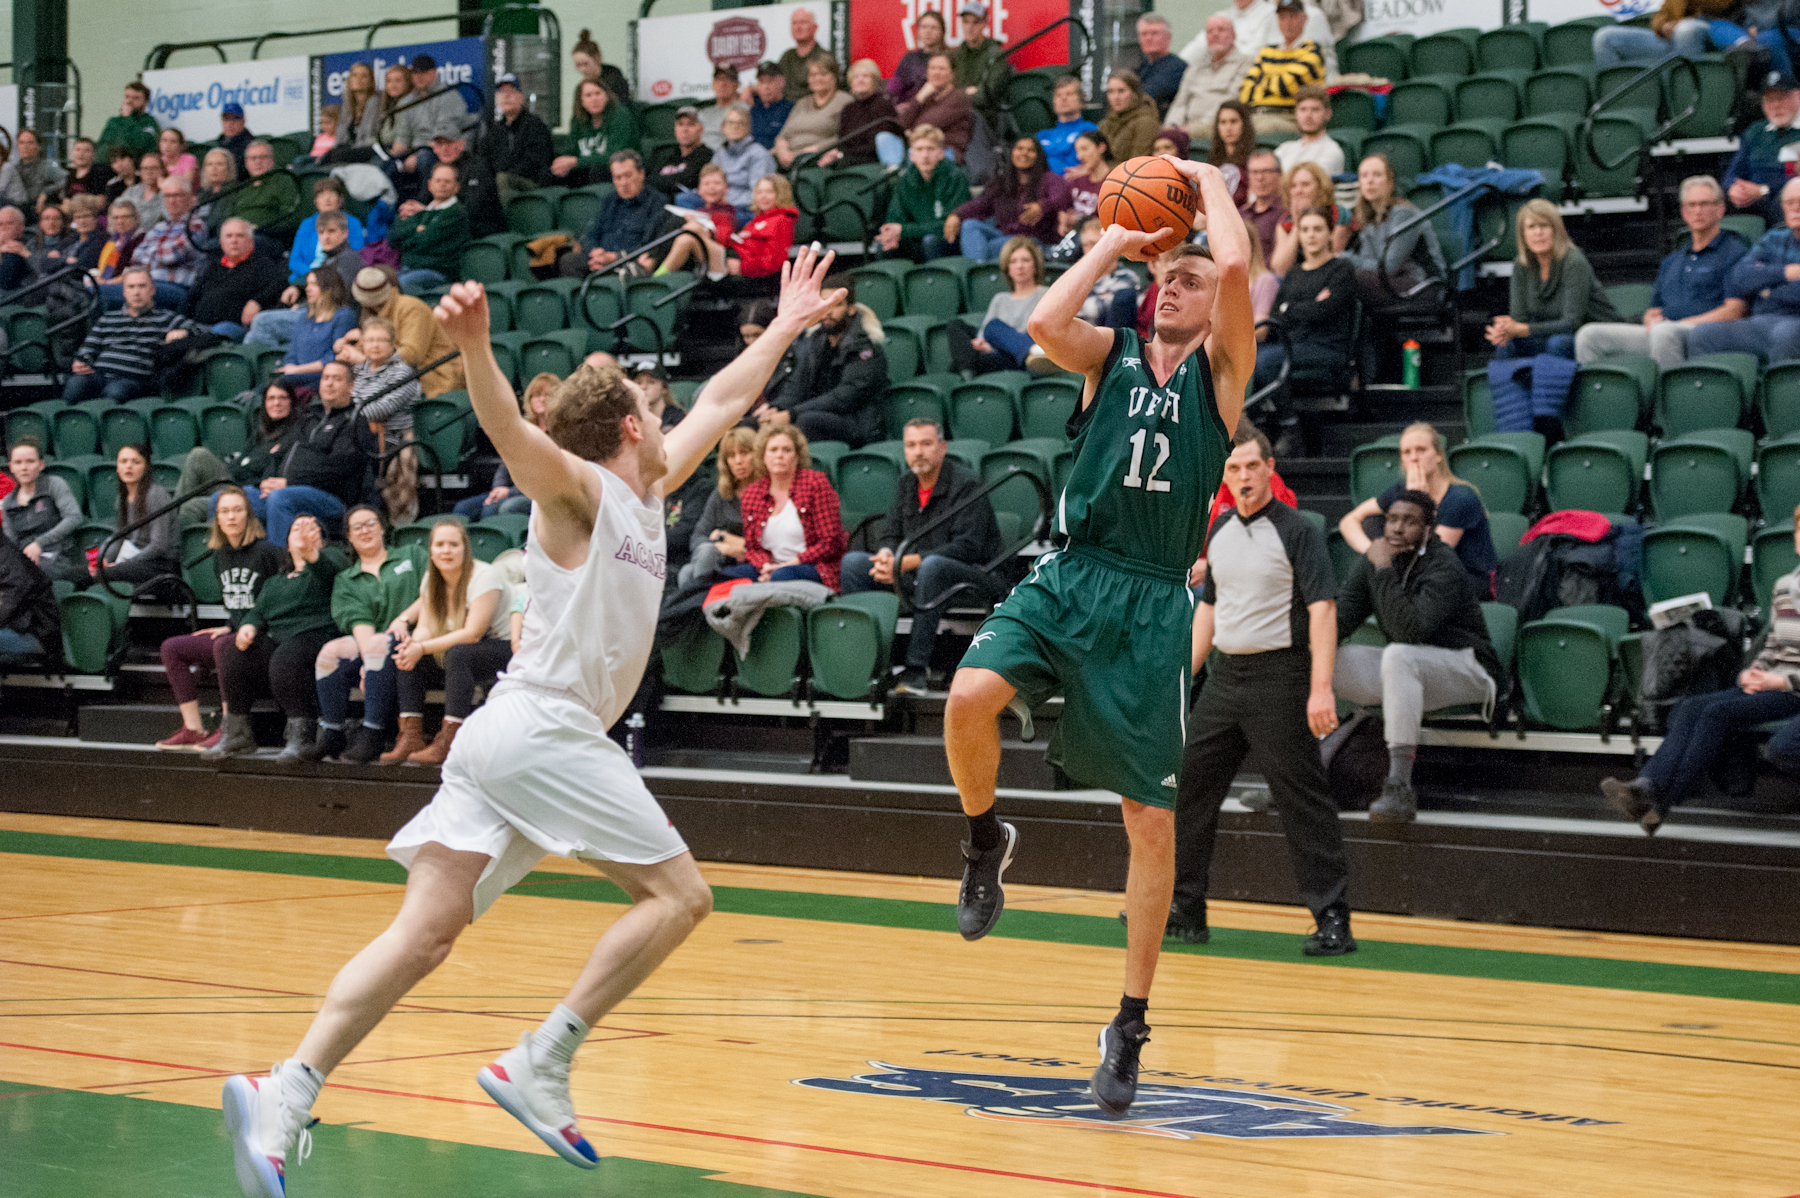 Sedlarevic pours in 25 points in home finale as Panthers edge Axemen 91-85